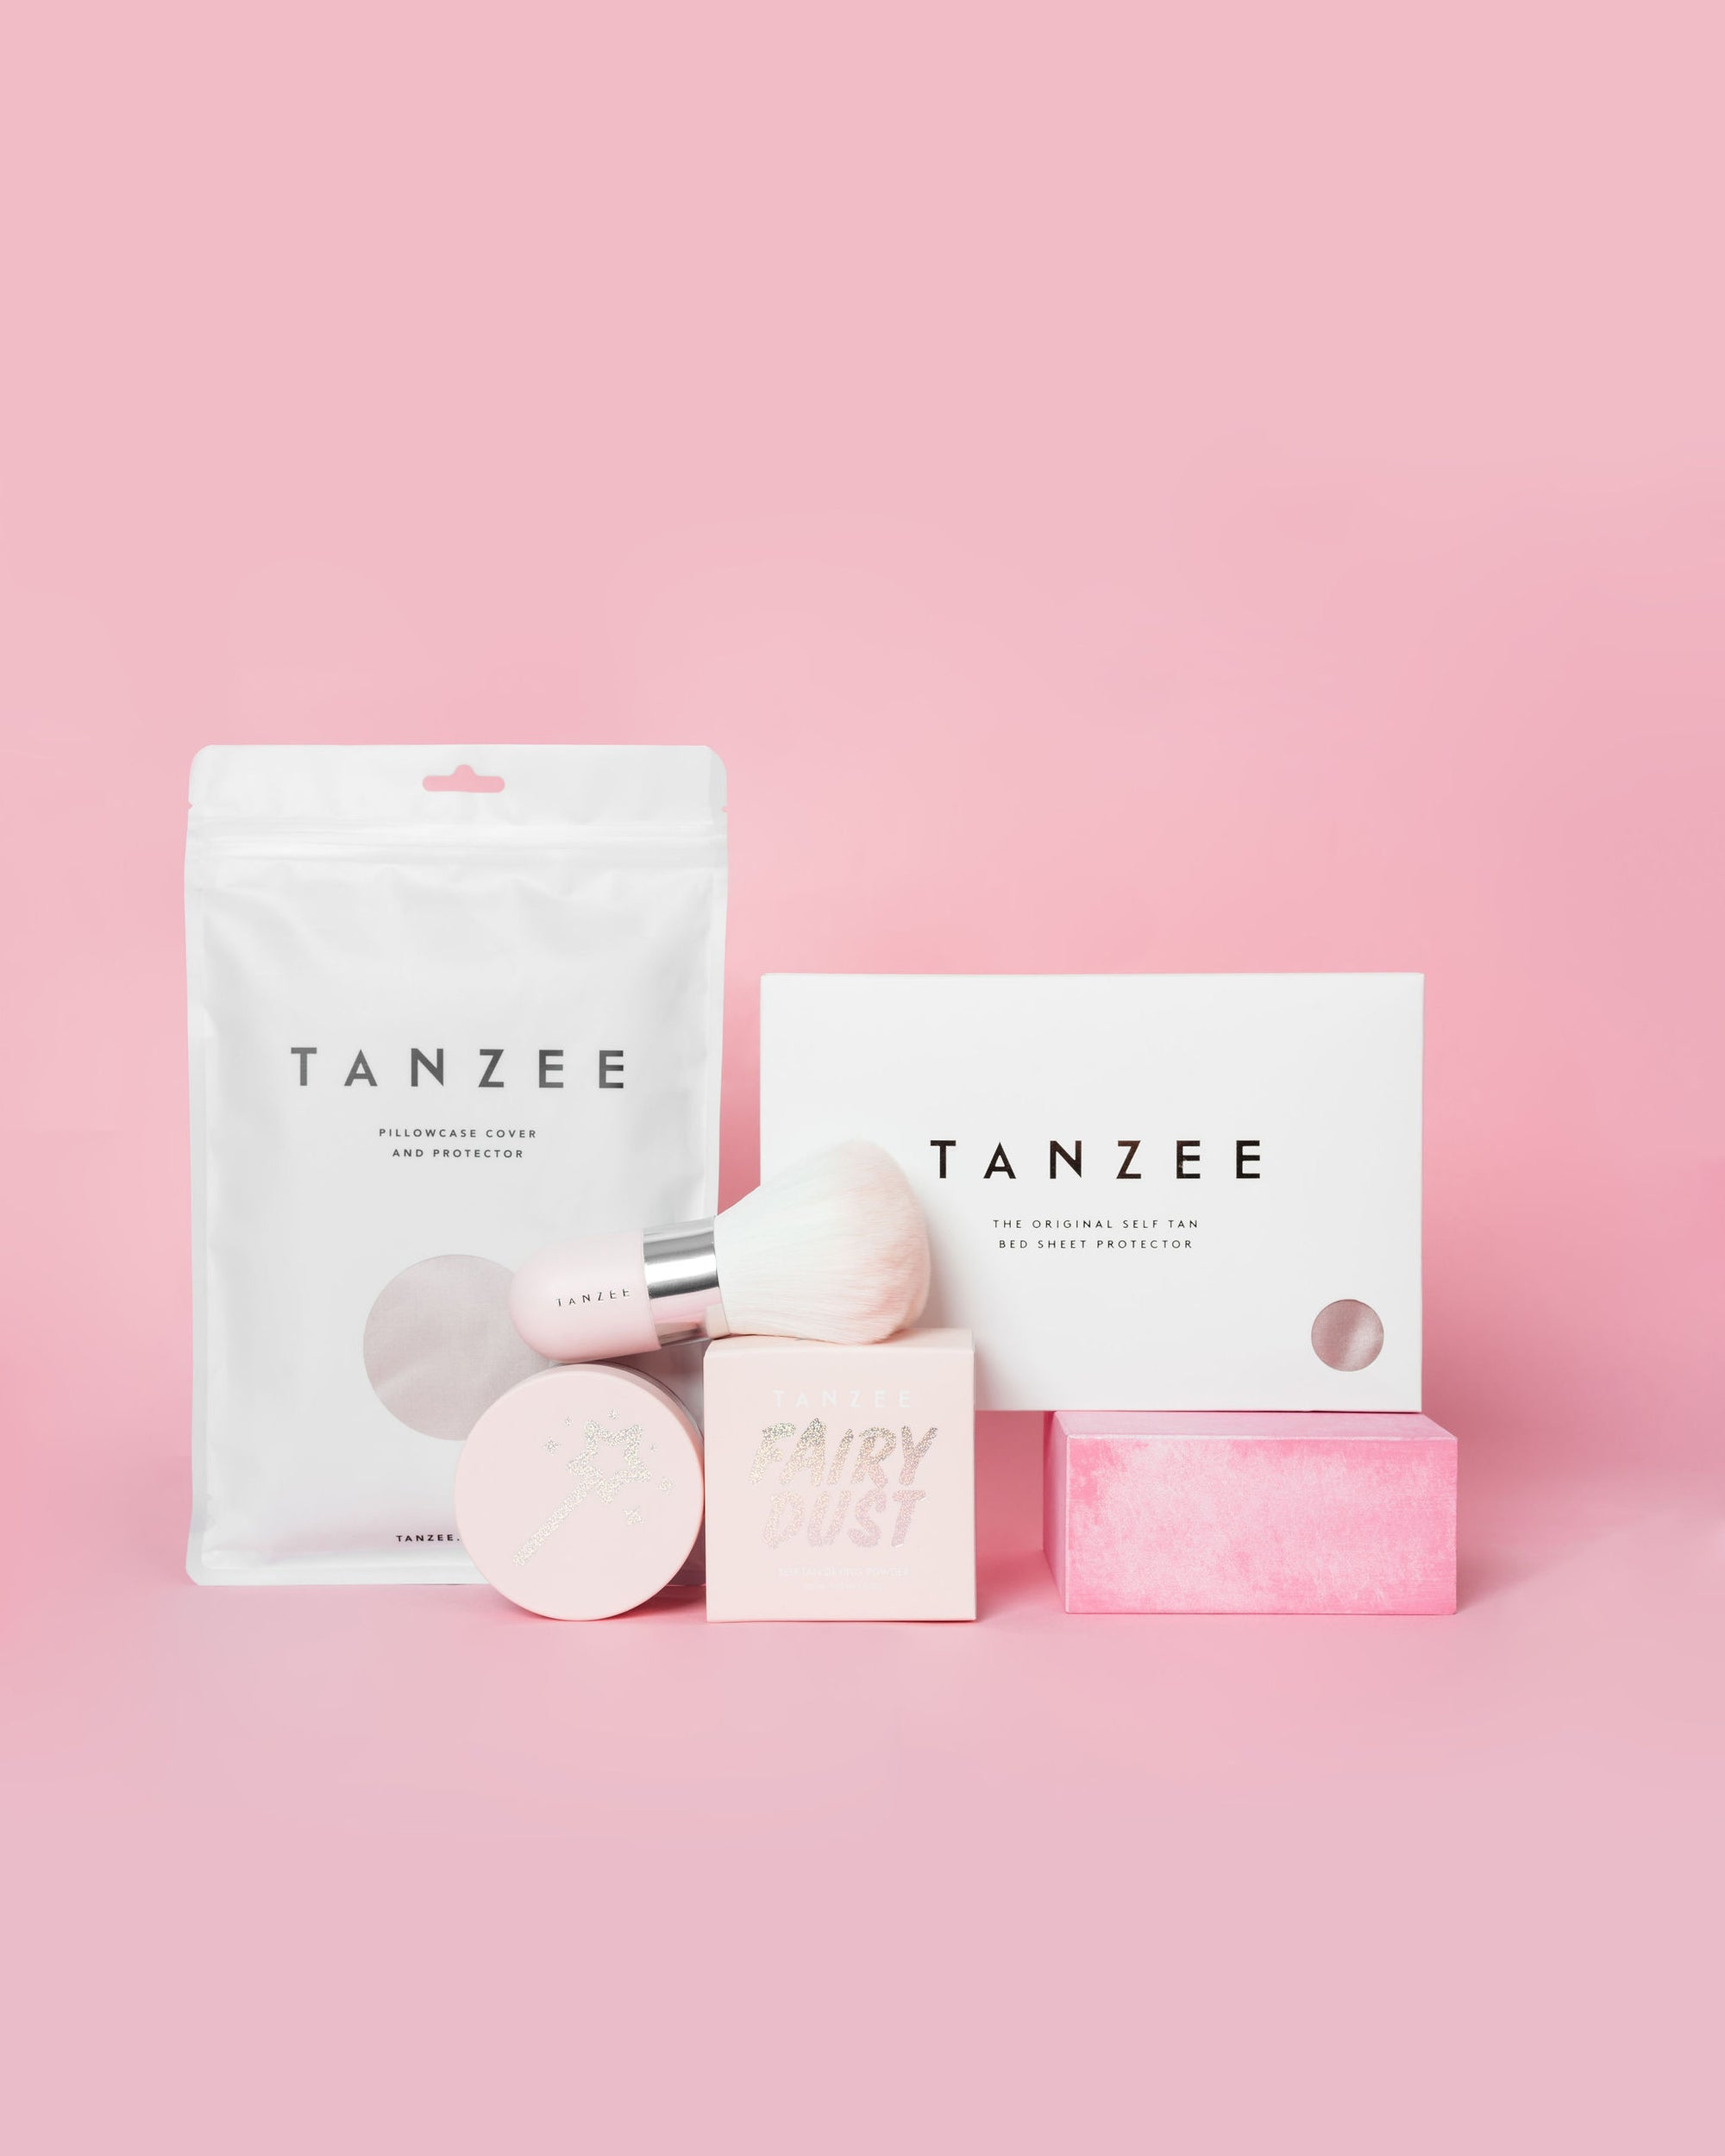 Luxury Tanning Bundle - Tanzee + Fairy Dust + Tanuki brush + Pillowcase (Save 15%)